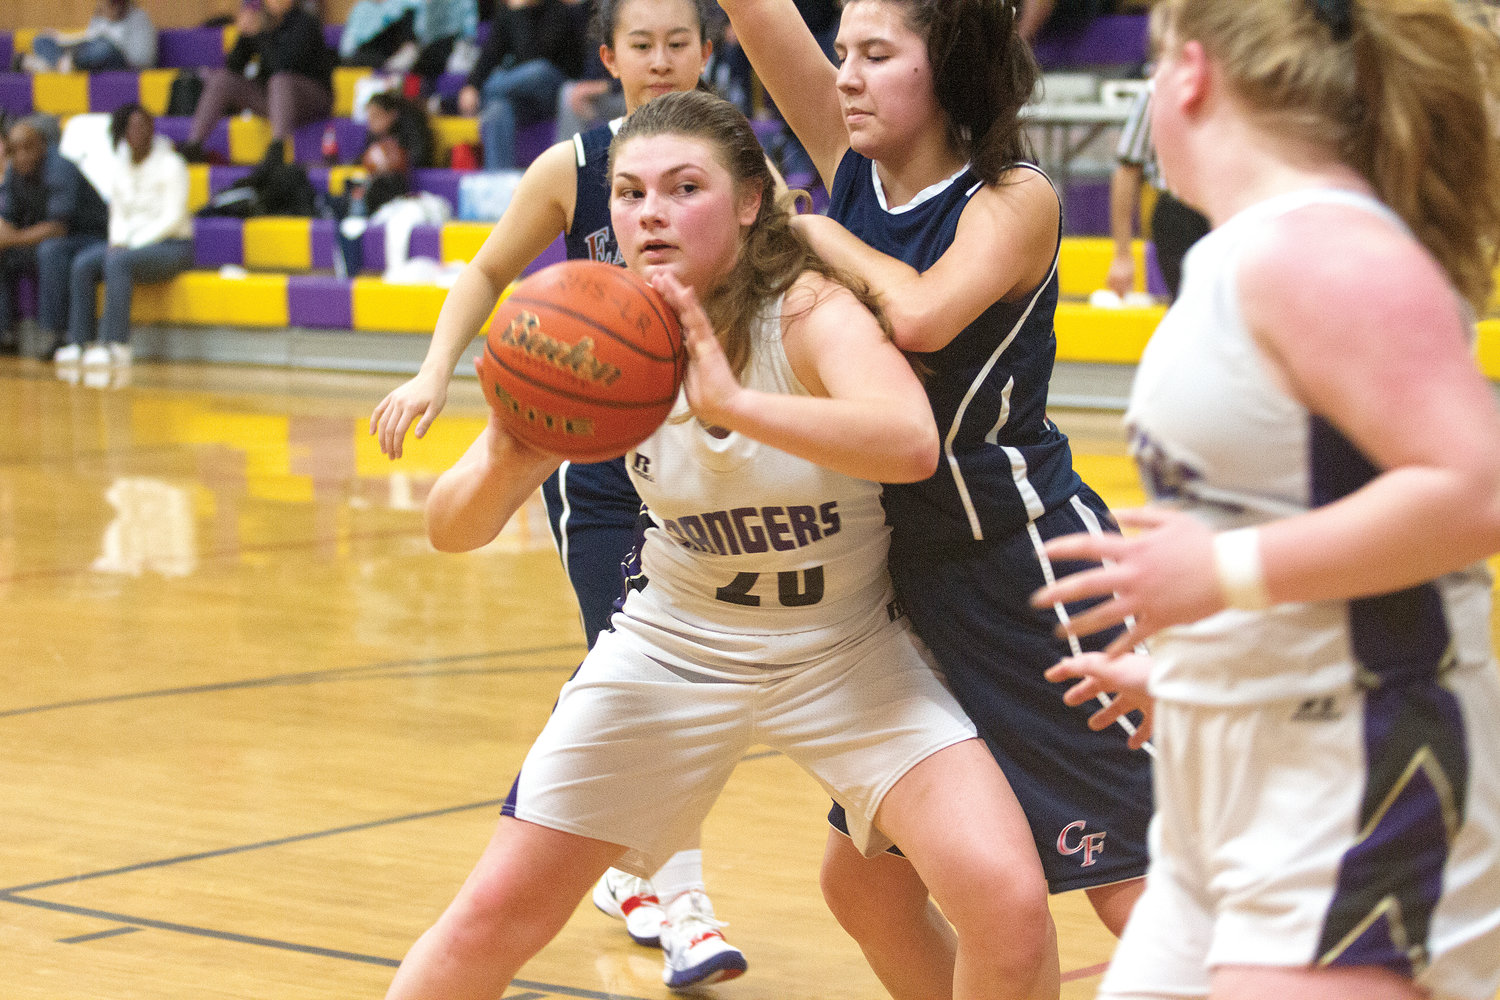 Quilcene junior forward Maddie Coffey looks to pass out of the post Jan. 30 during the Rangers' win over Christian Faith. Coffey powered through contact to complete four 3-point plays and kept Quilcene's postseason hopes alive.